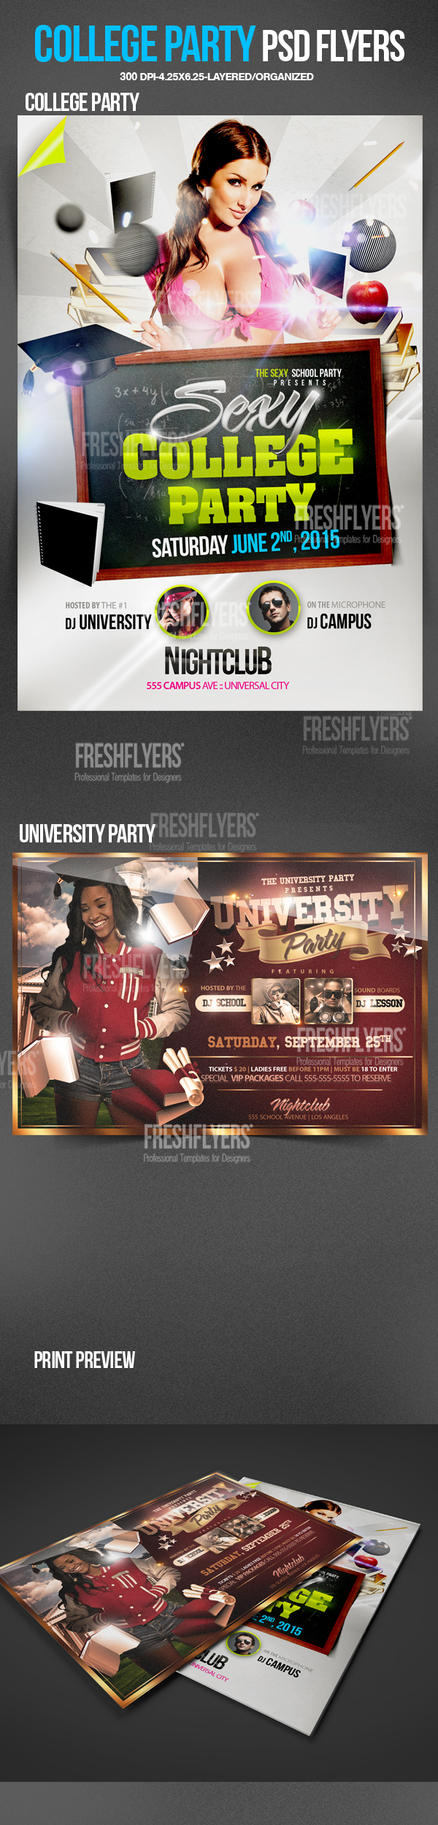 college party psd flyer template by imperialflyers on deviantart